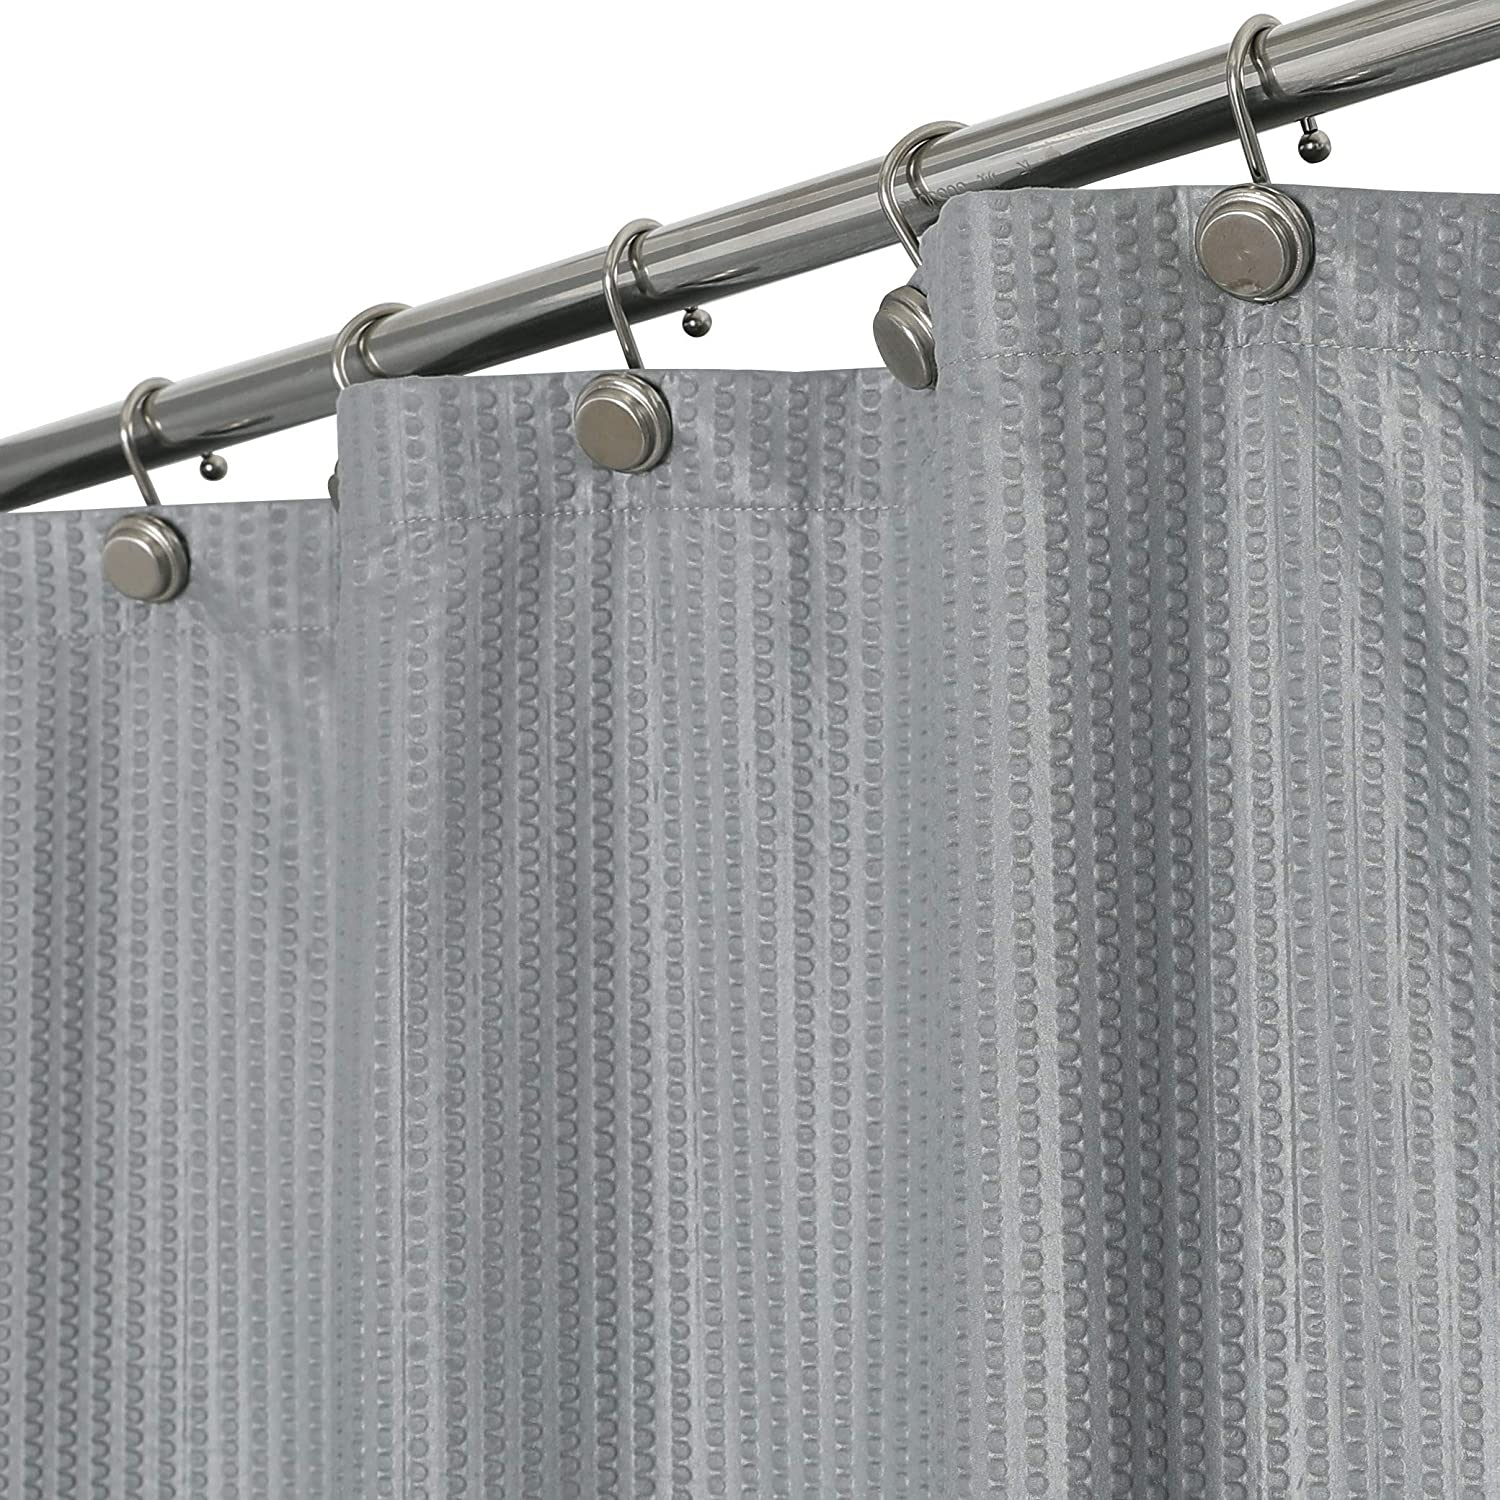 WEST LAKE Fabric Shower Curtain Grey Bathroom Decor Button Holes Design Water Resistant Hotel Luxury Spa Embossed Shower Curtain,Machine Washable,Gray/Grey, 70x72 inch